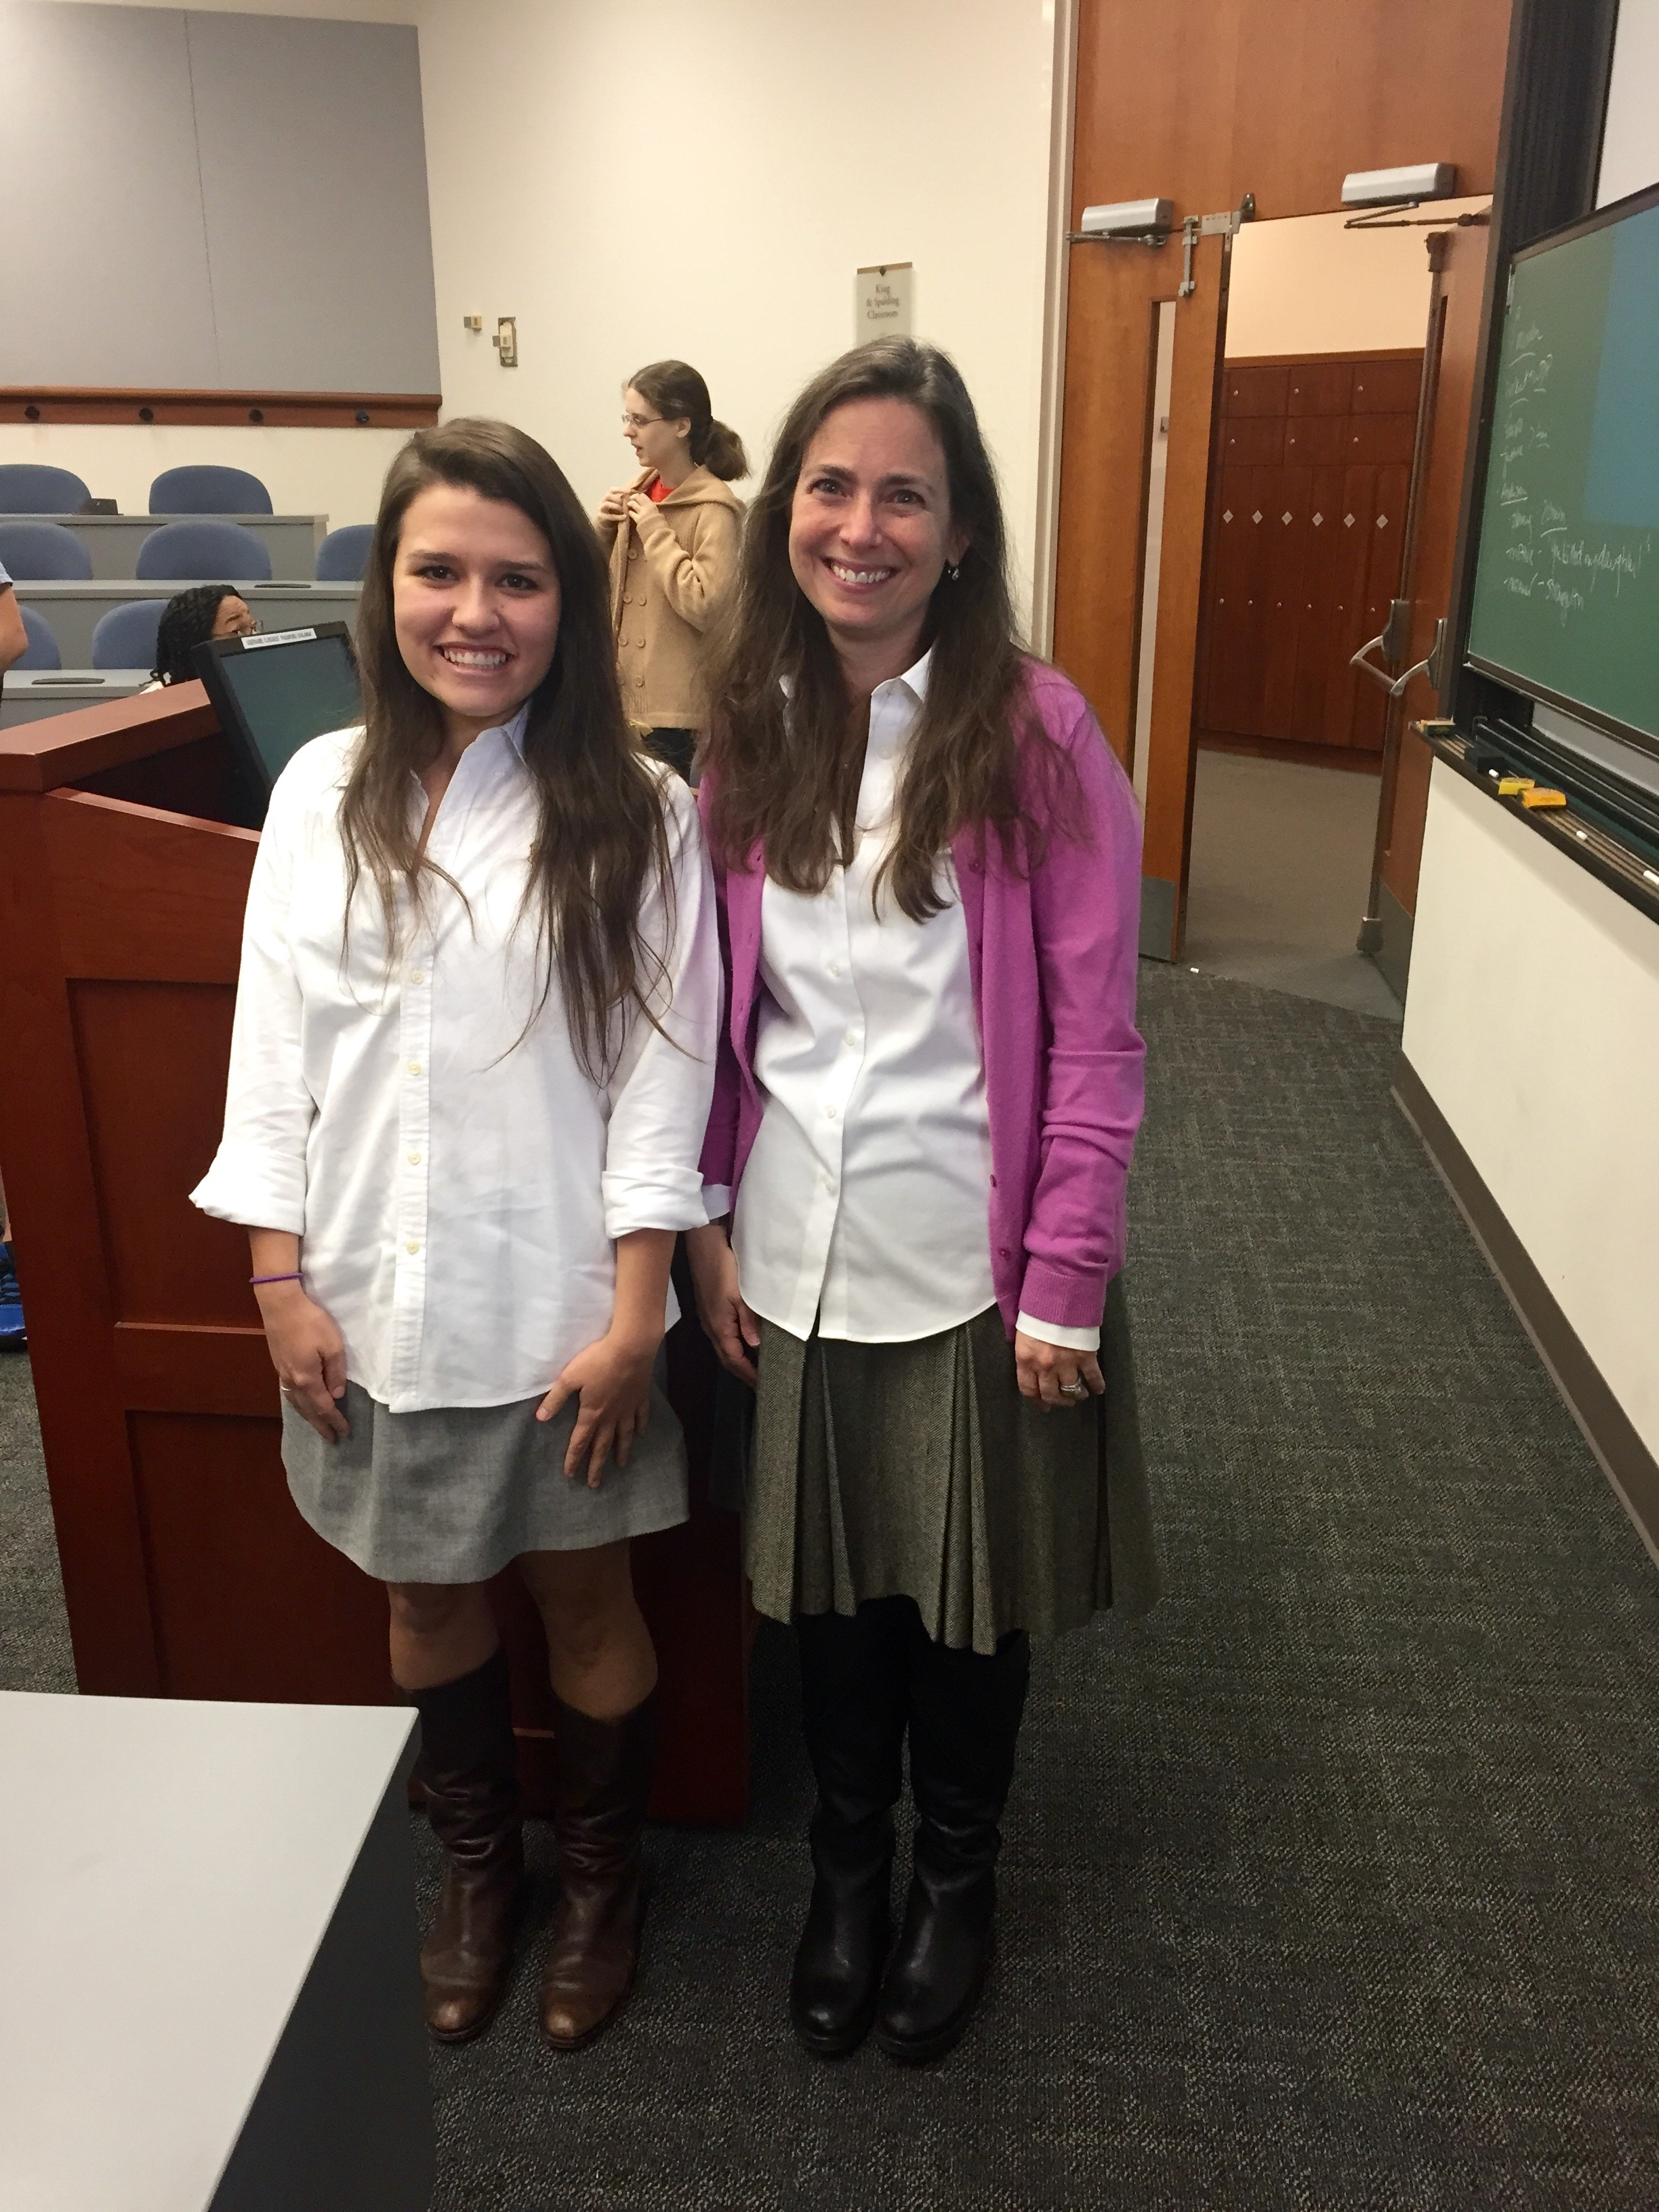 Grace O'Donnell dressed as Prof. Ferzan for Halloween. Can you tell them apart? Courtesy of Prof. Ferzan